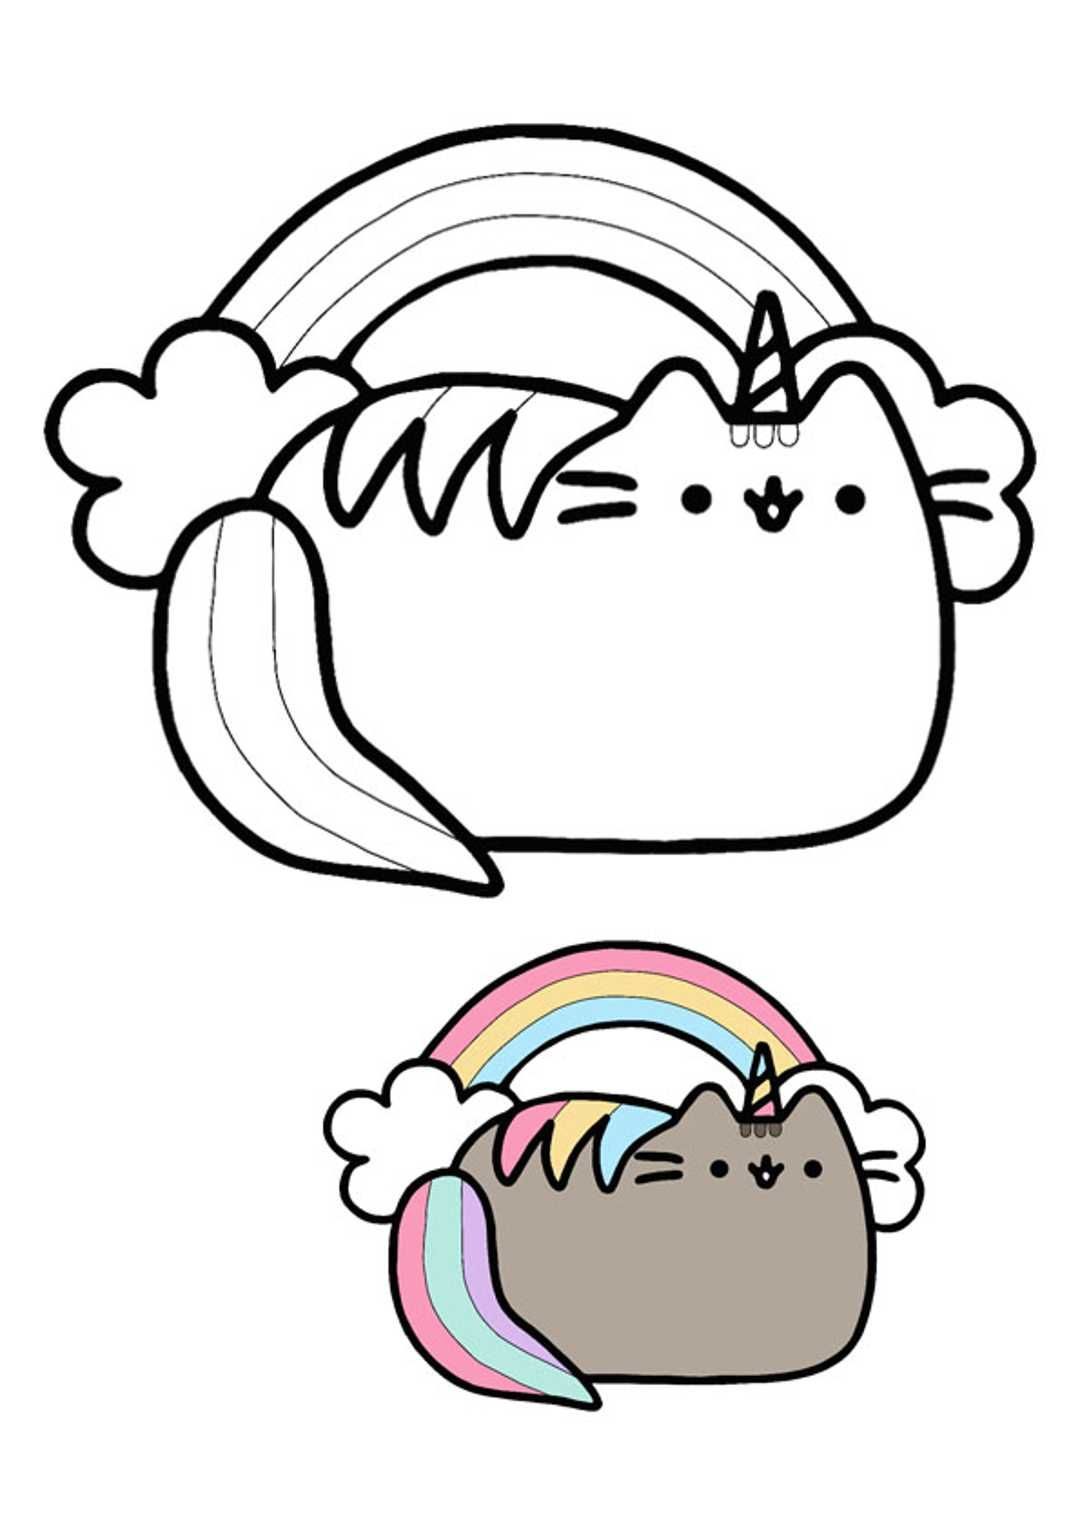 Pusheen Unicorn Coloring Pages Pusheen Coloring Pages Unicorn Coloring Pages Hello Kitty Colouring Pages